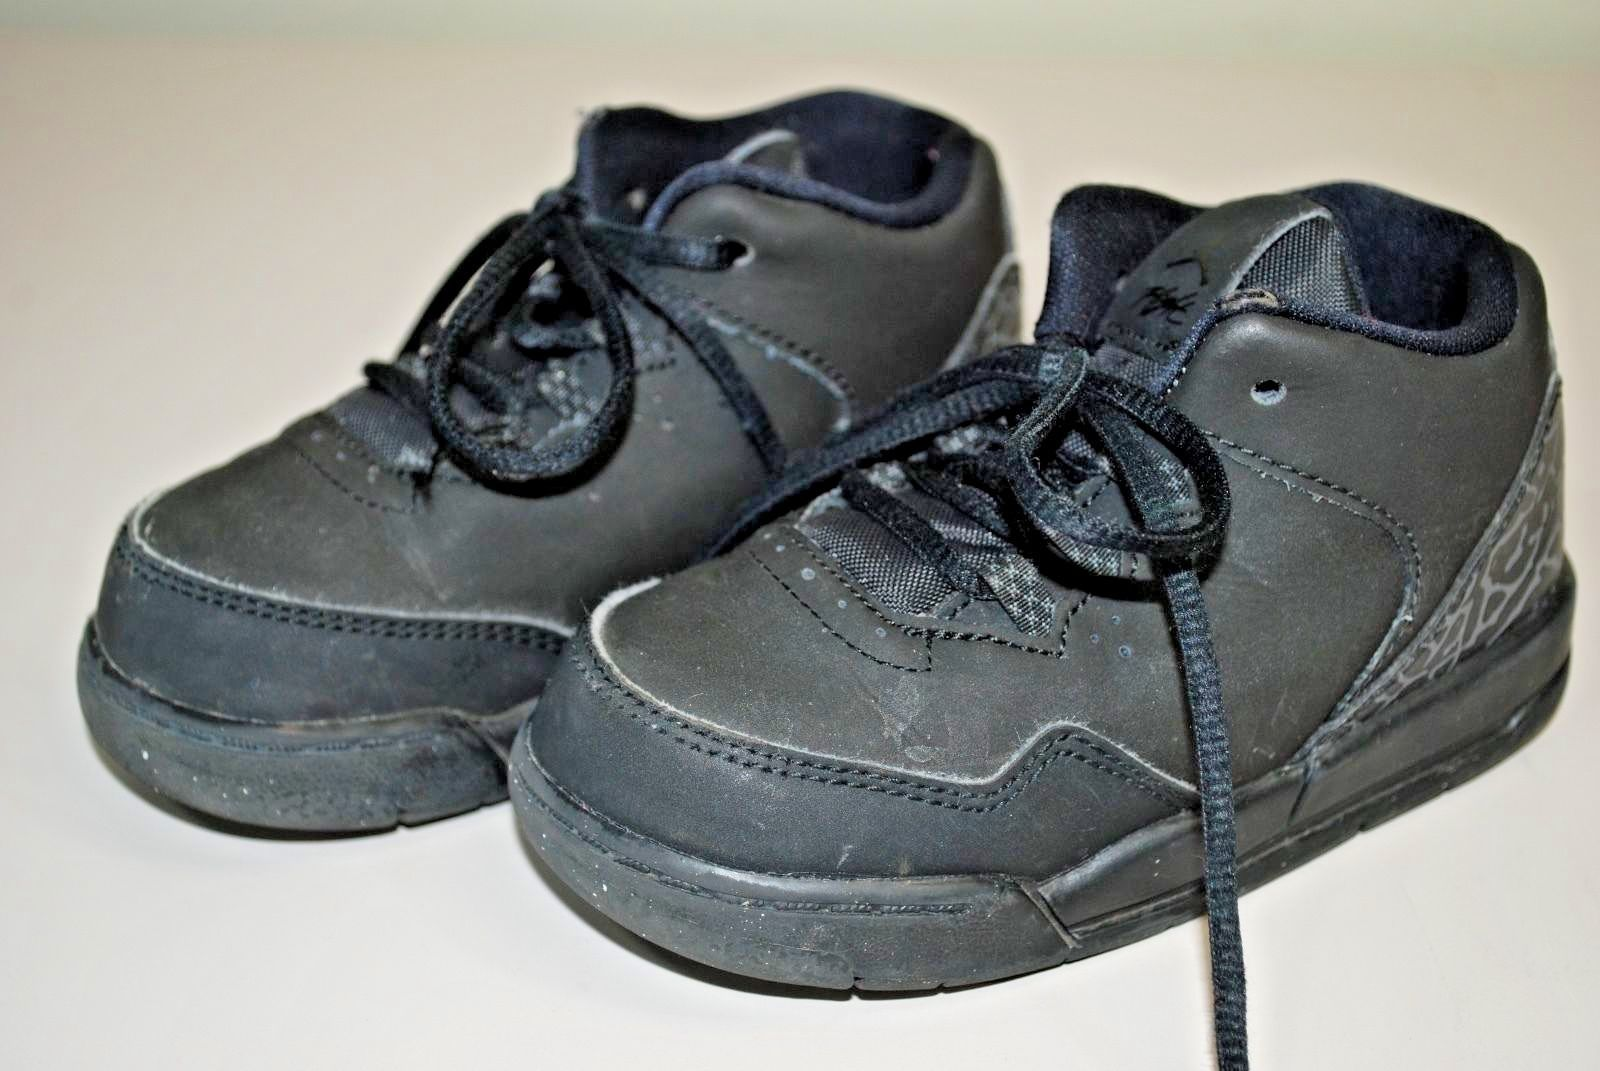 Nike Air Jordan Flight Origin 2 Sneakers TODDLER BOYS SIZE 7C SHOES - Black/Gray